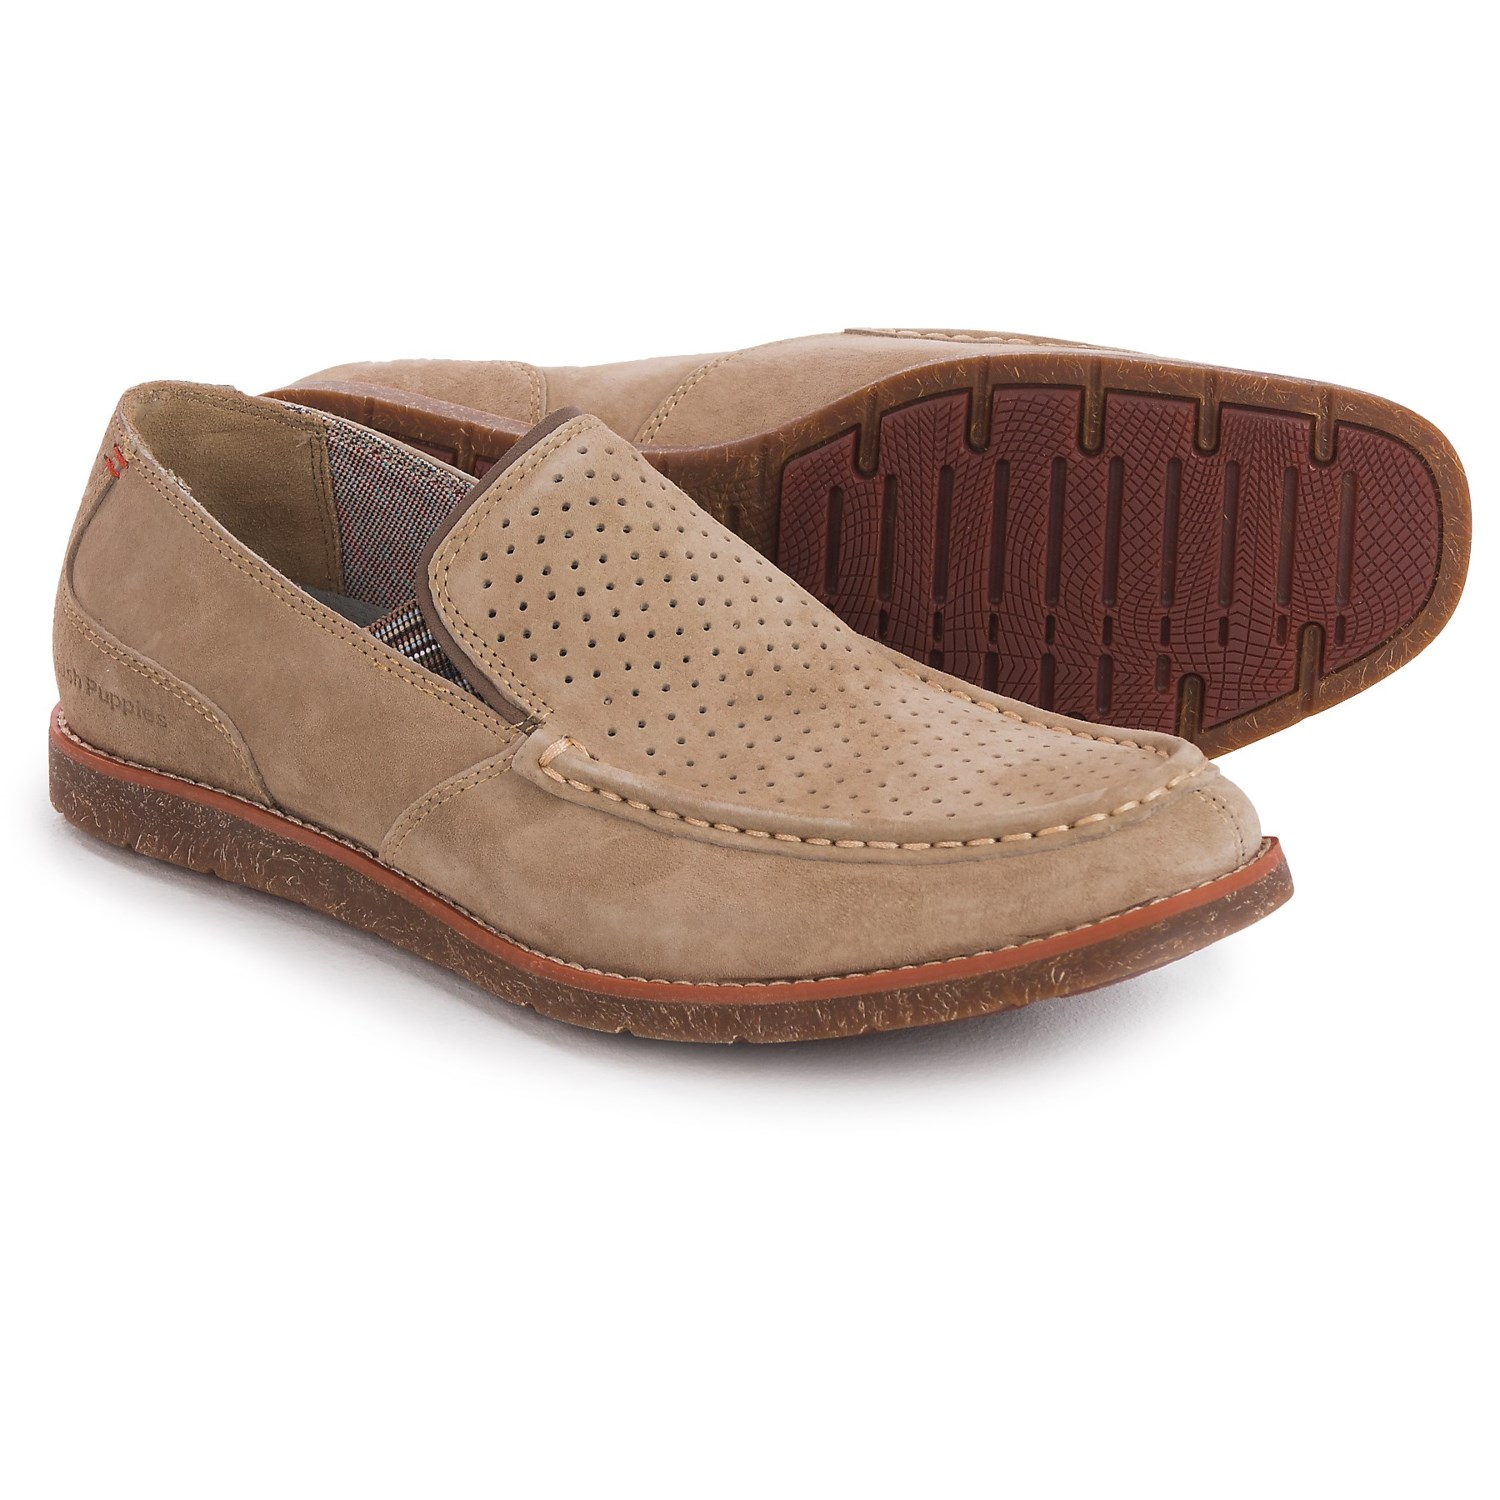 Hush Puppies Lorens Jester